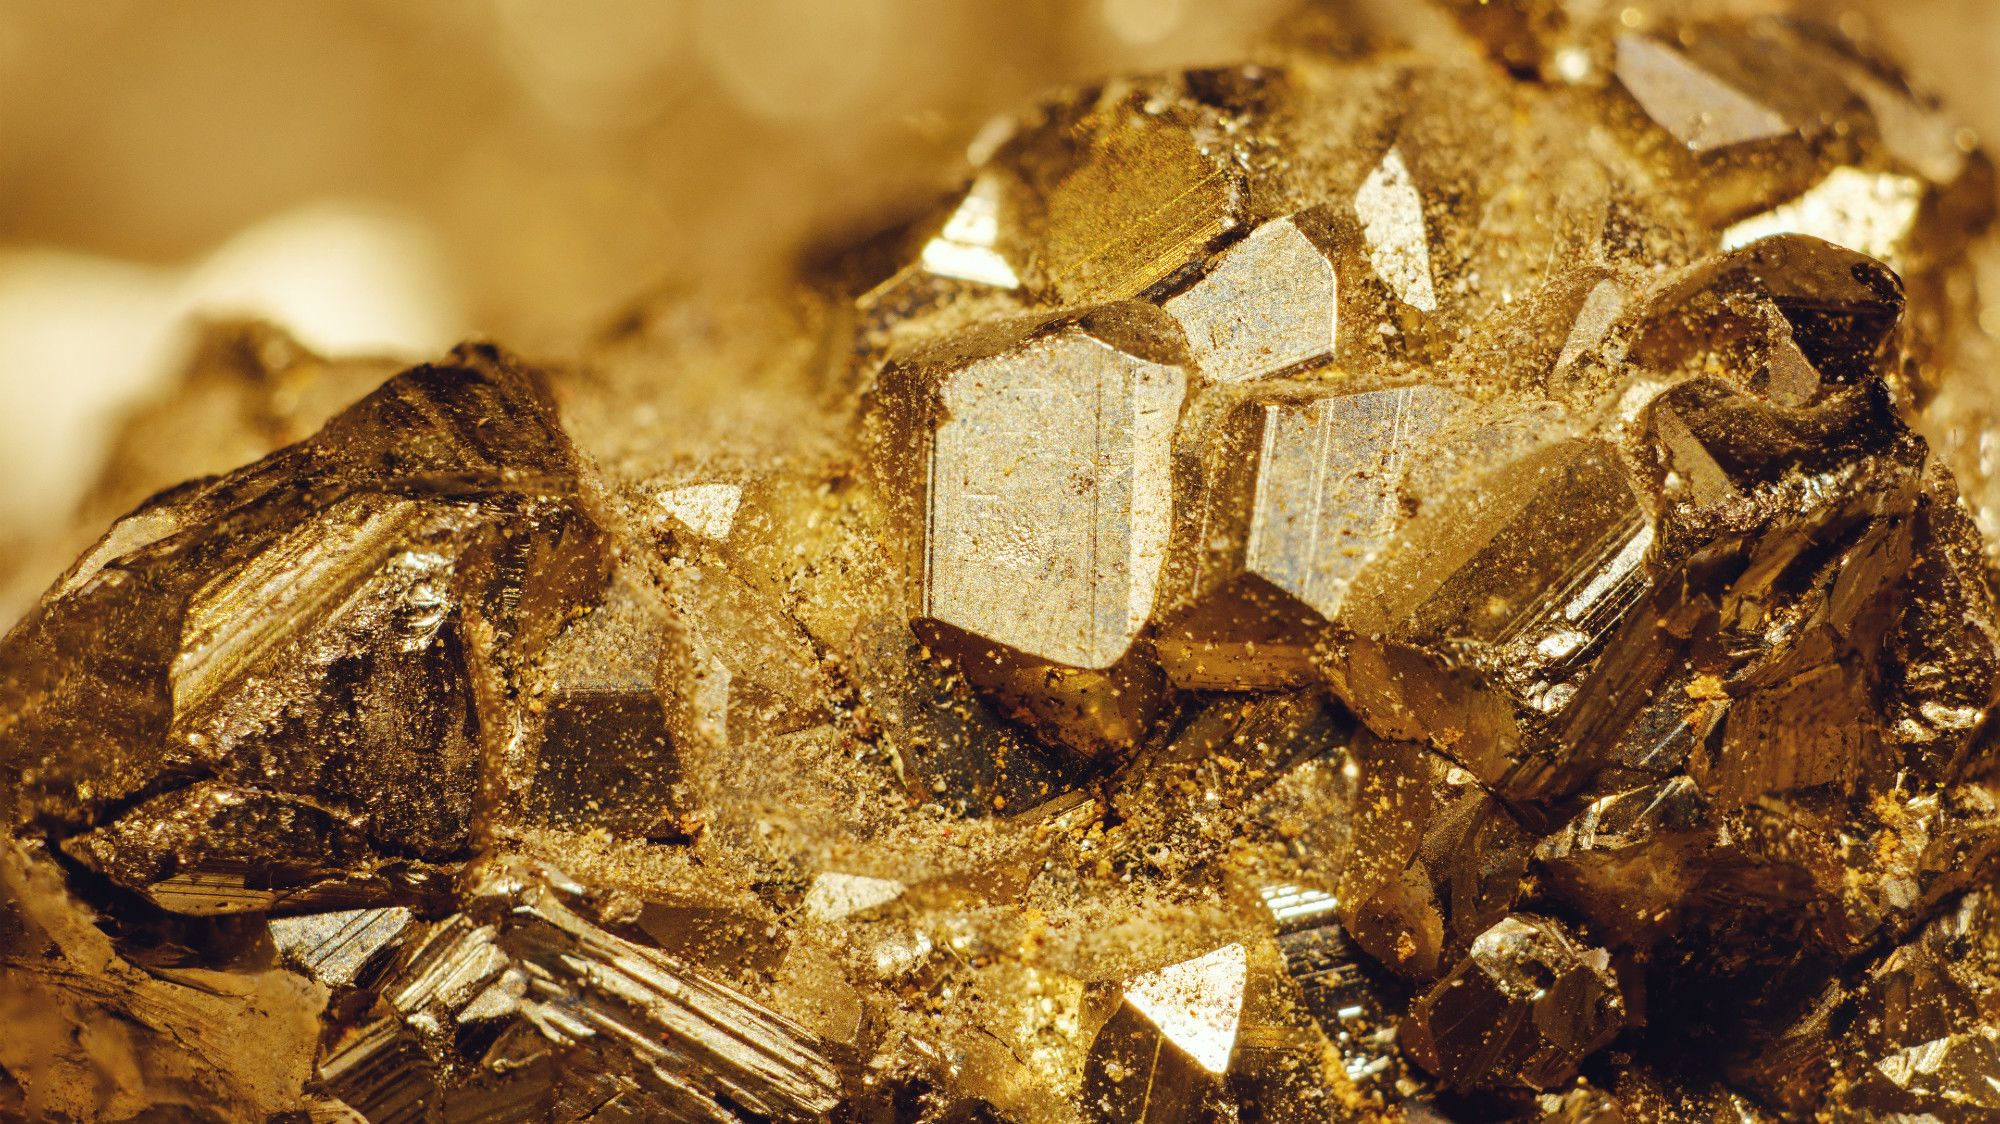 Irony Alert: Fool's Gold Actually Contains Real Gold